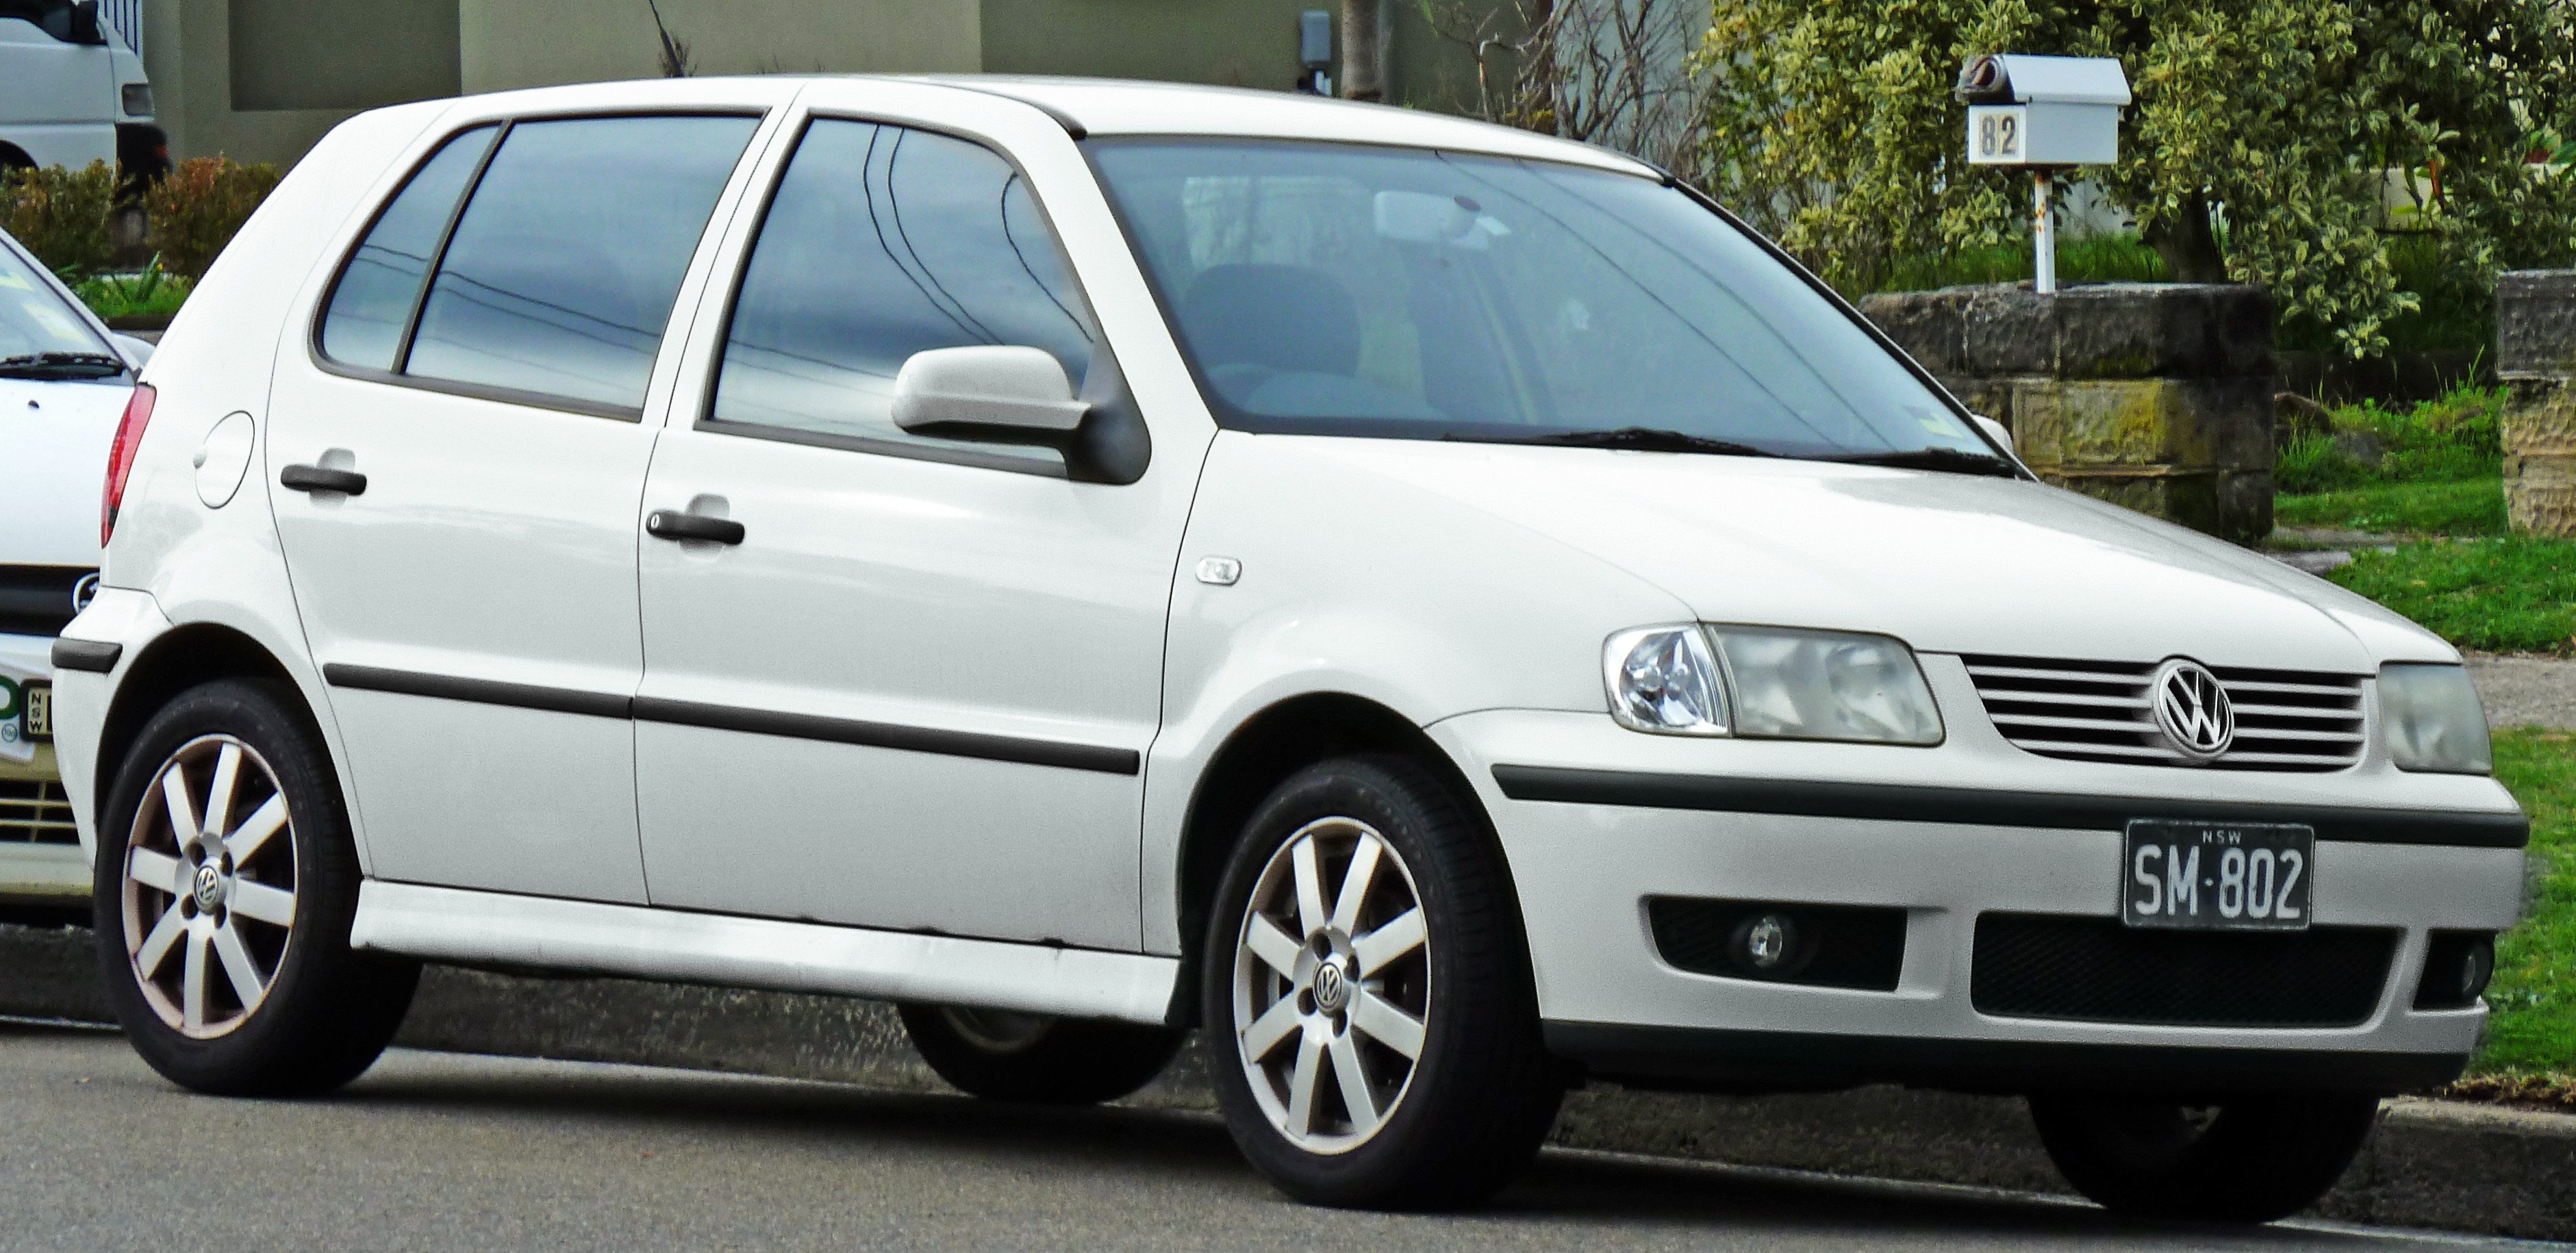 1999 Volkswagen Polo Hatchback 5-door